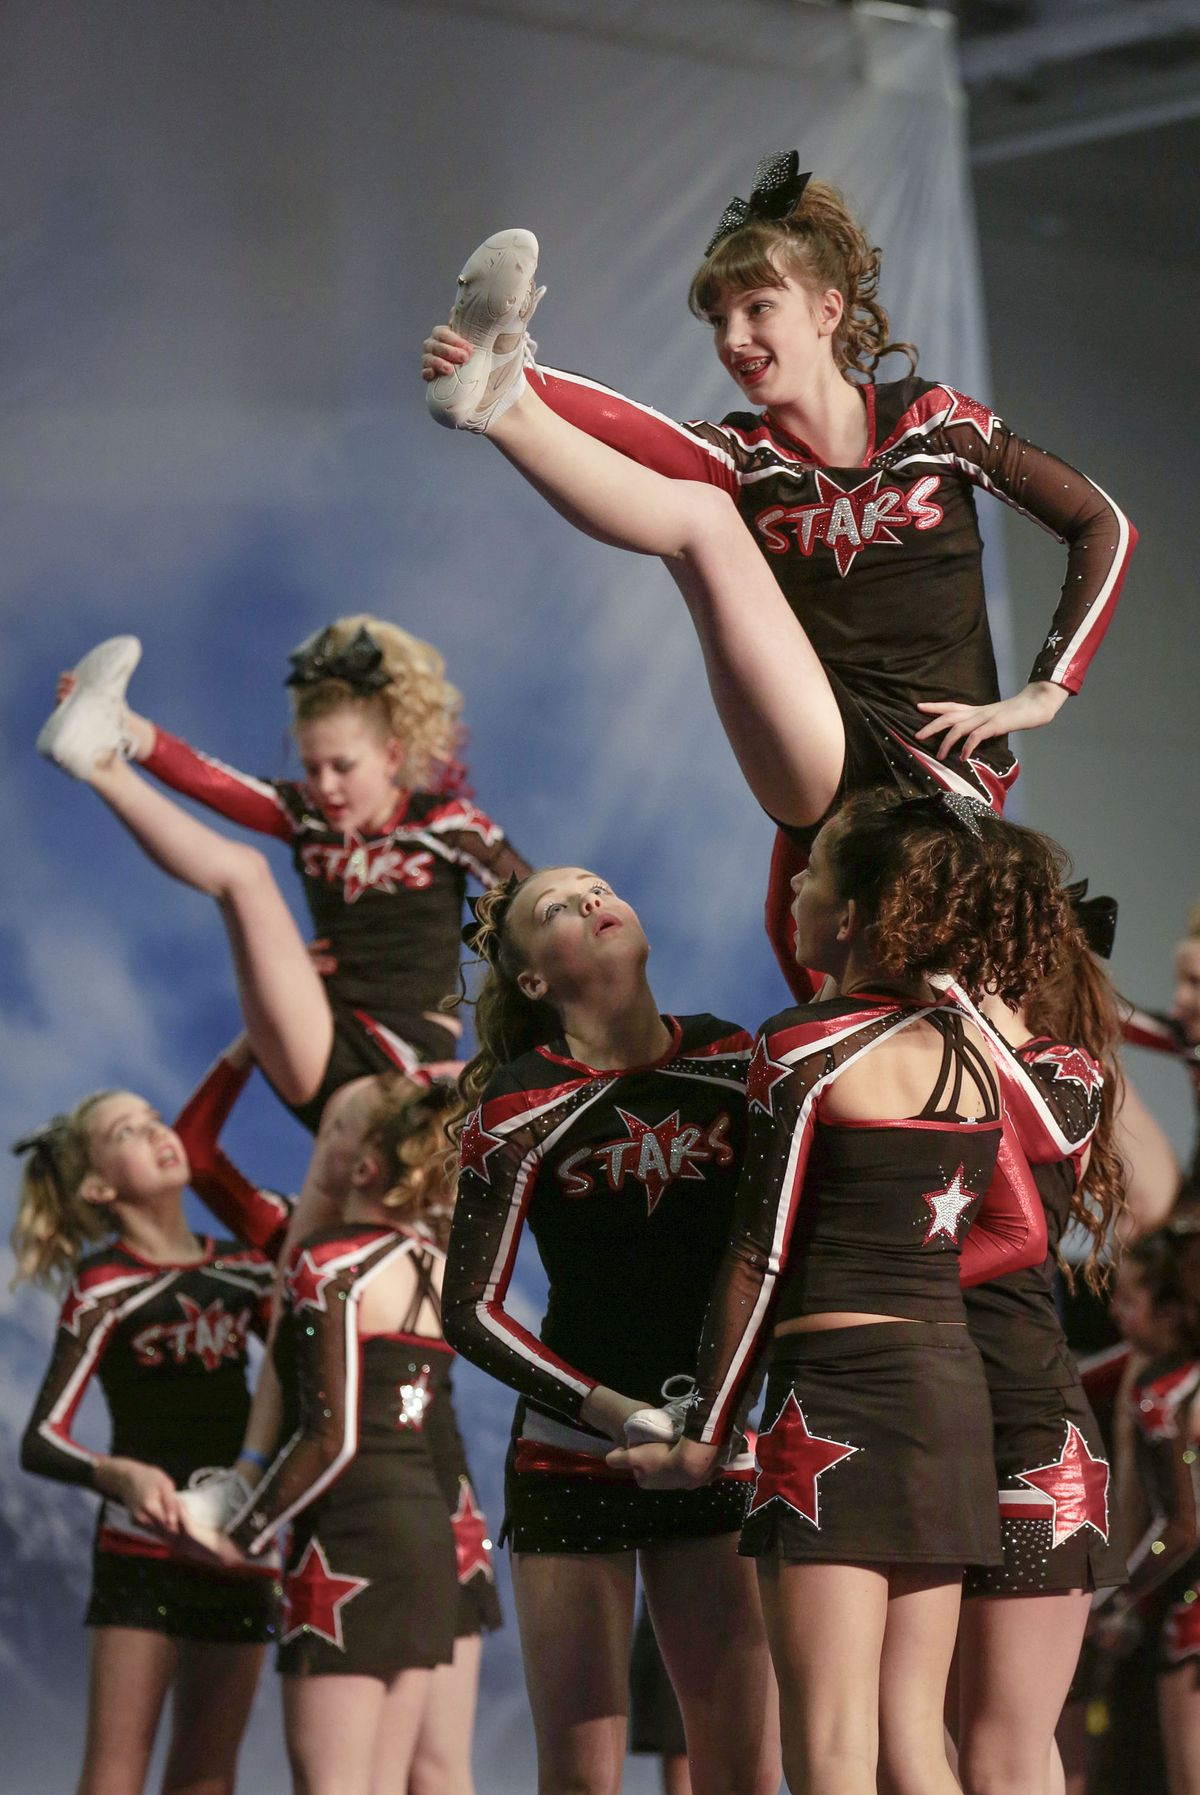 The Evolution Of The Cheerleading Uniform From Bulky Sweaters To